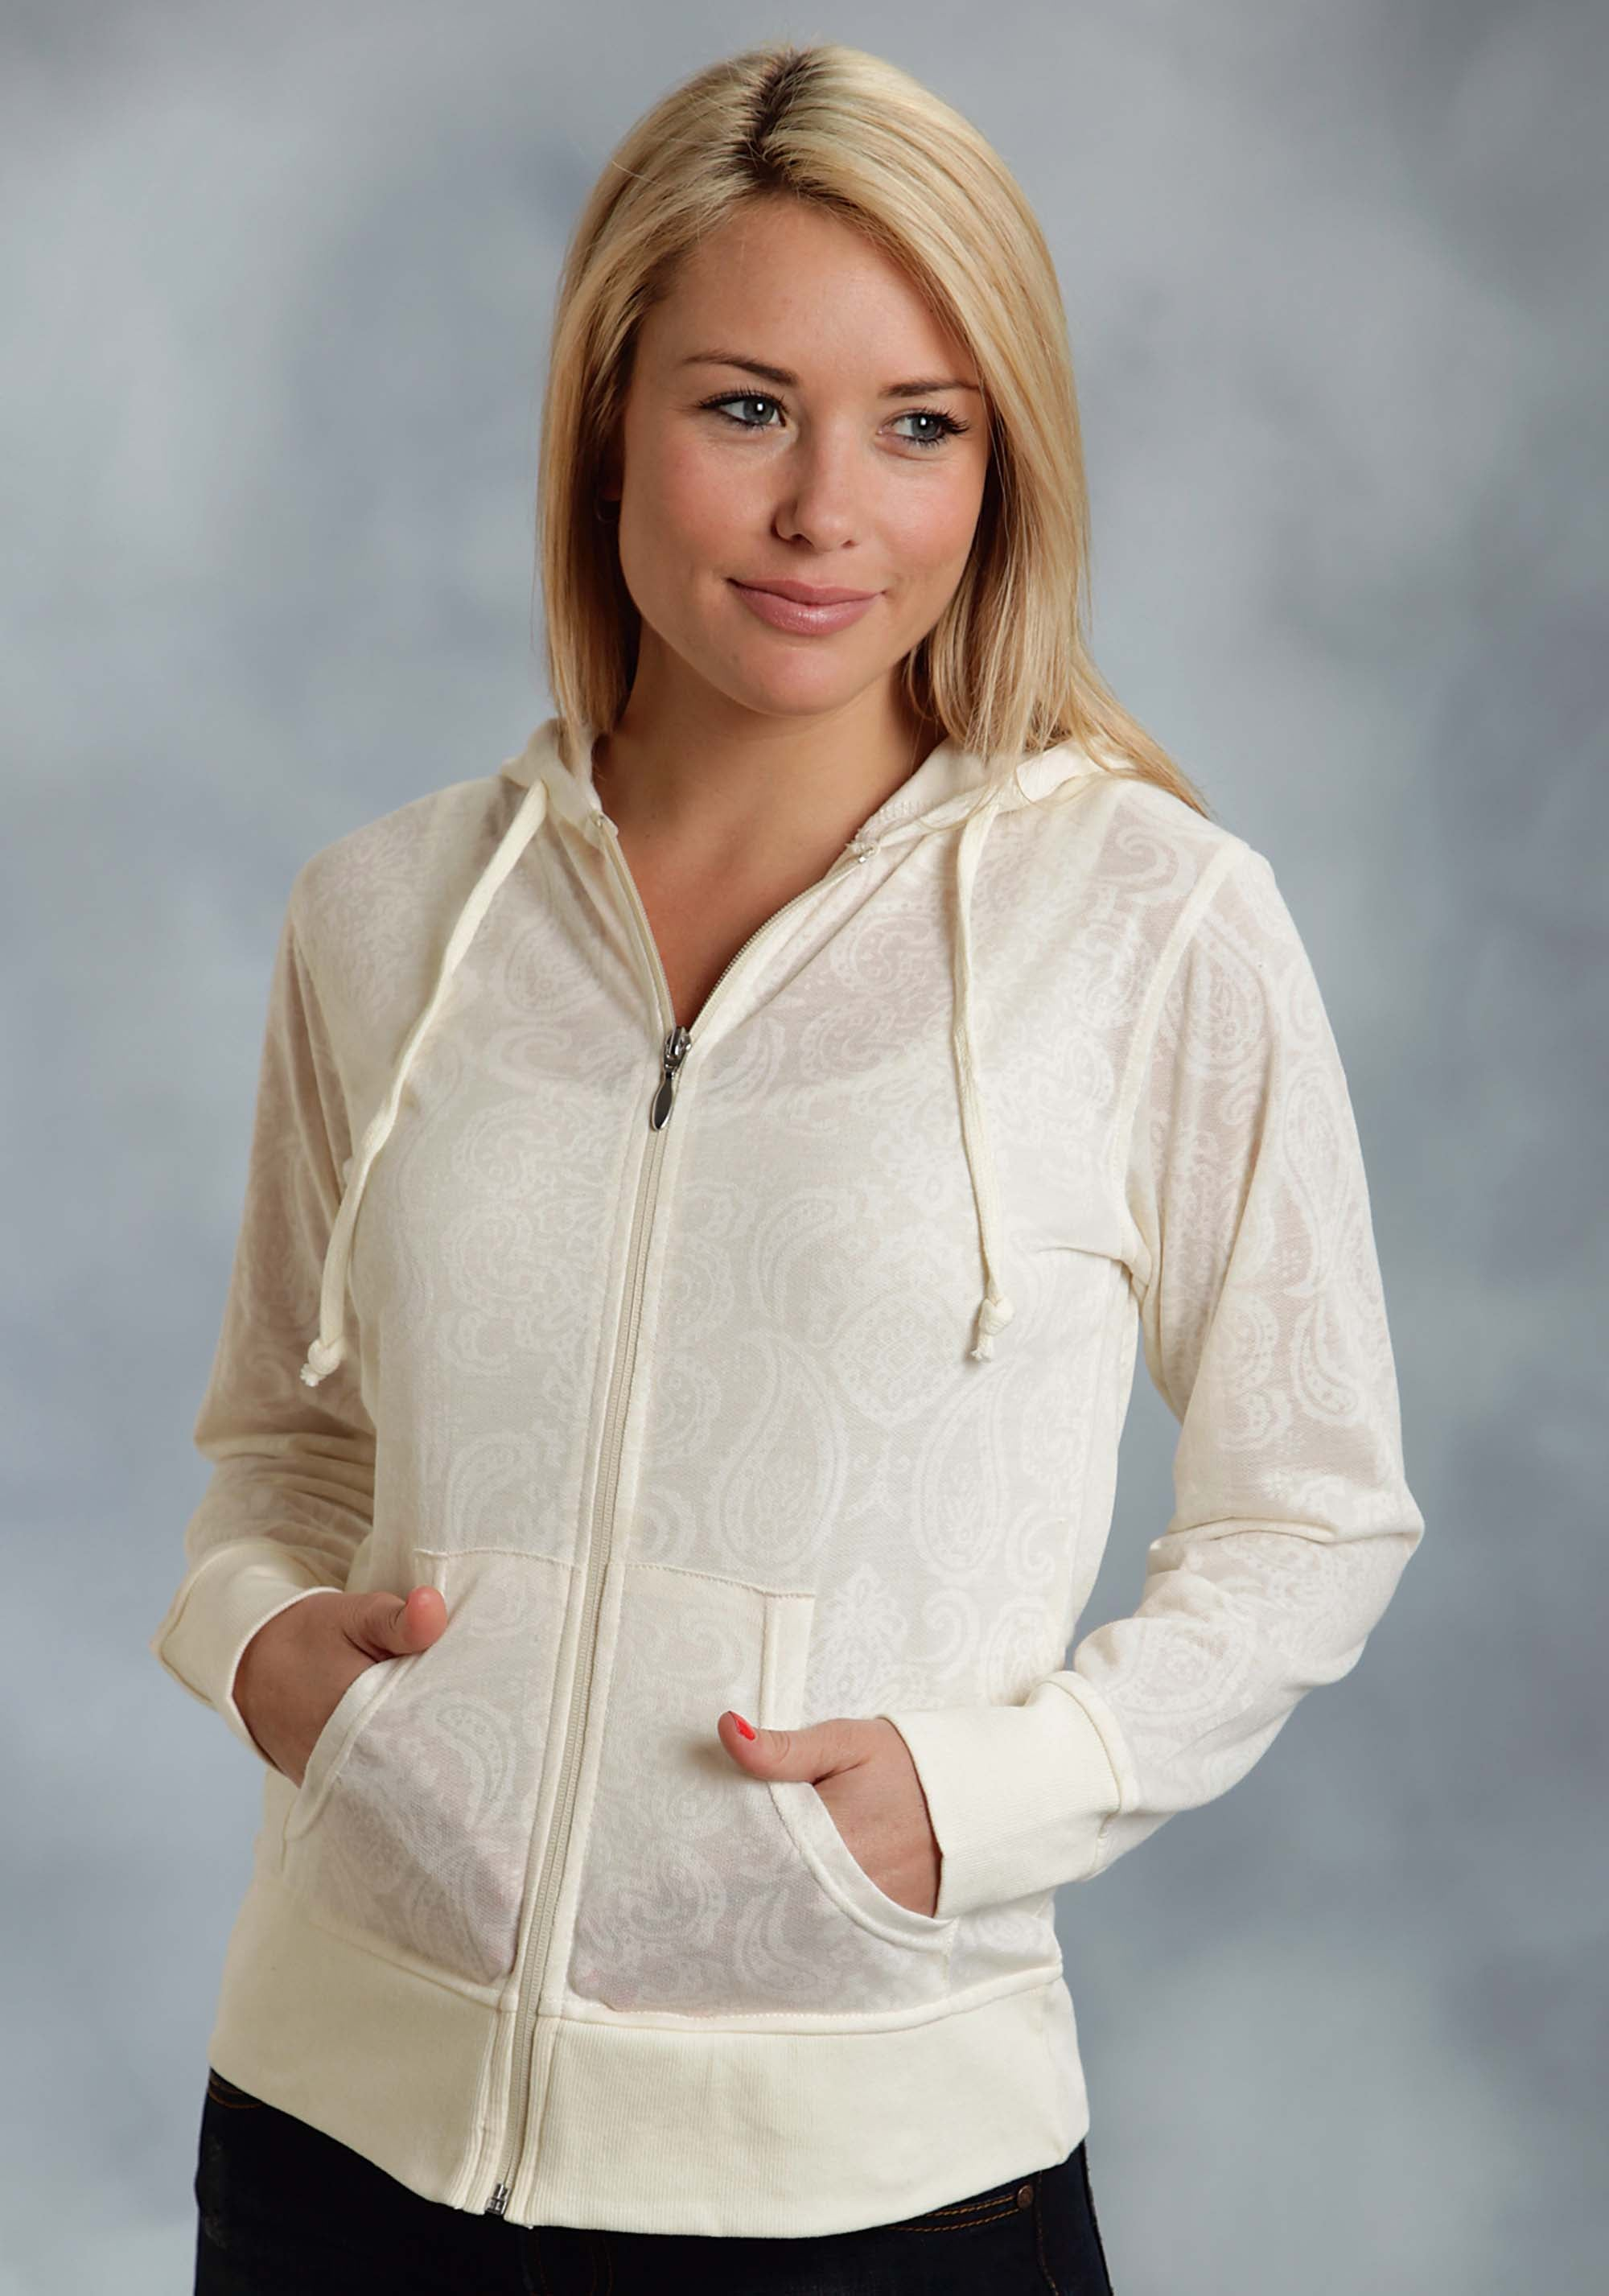 ROPER LADIES WHITE BURNT OUT ZIP UP HOODIE JKT  JACKET